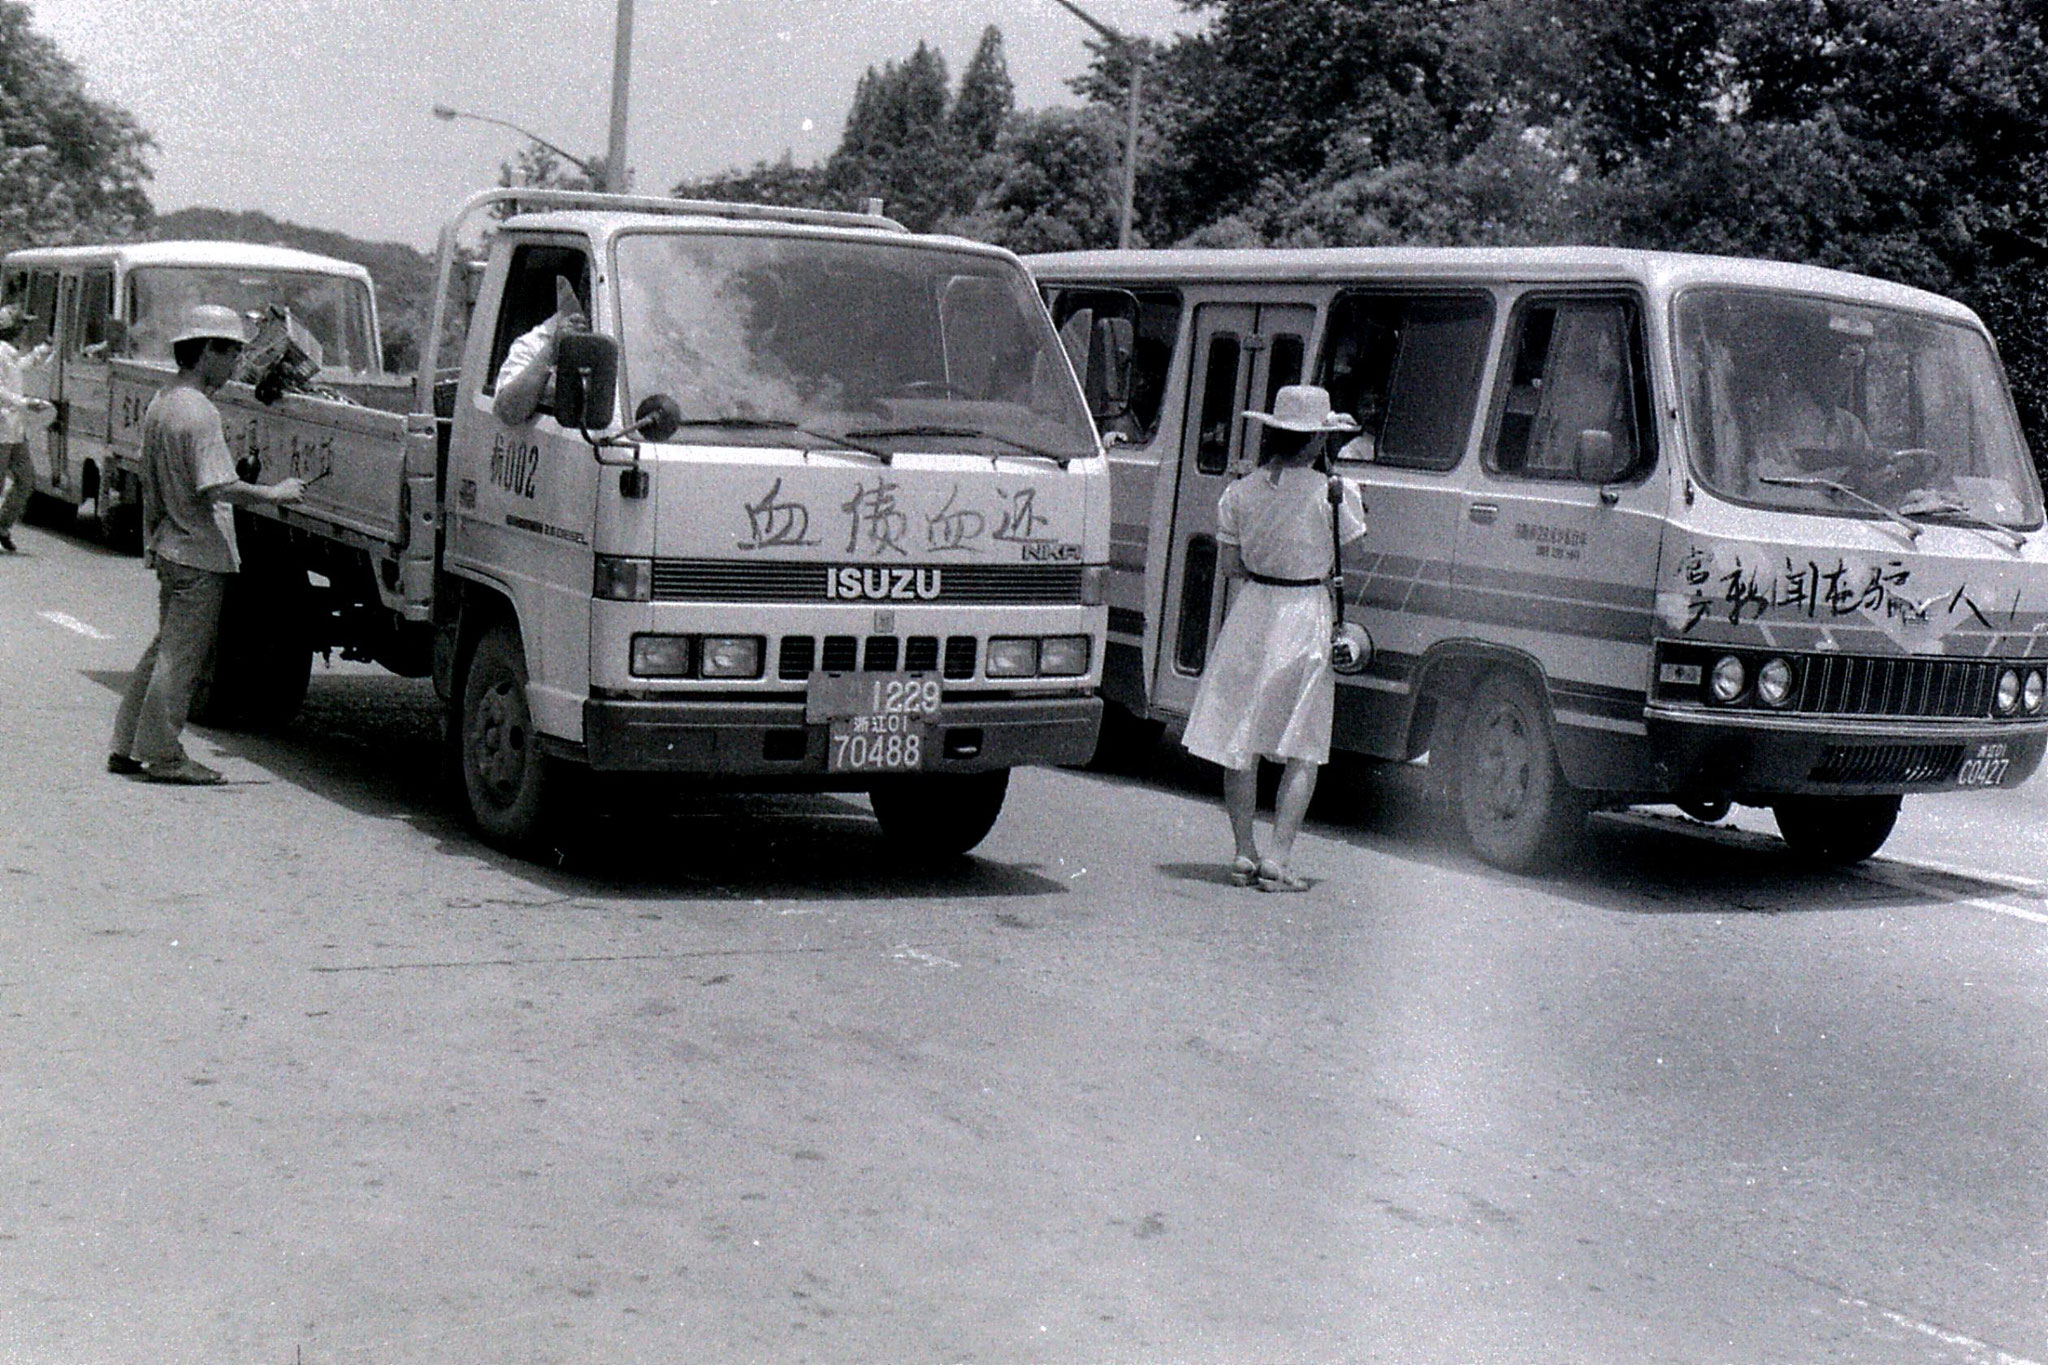 8/6/1989: 5: SW corner of Xi Hu, roadblock and painted vehicles, leaflets, money collection